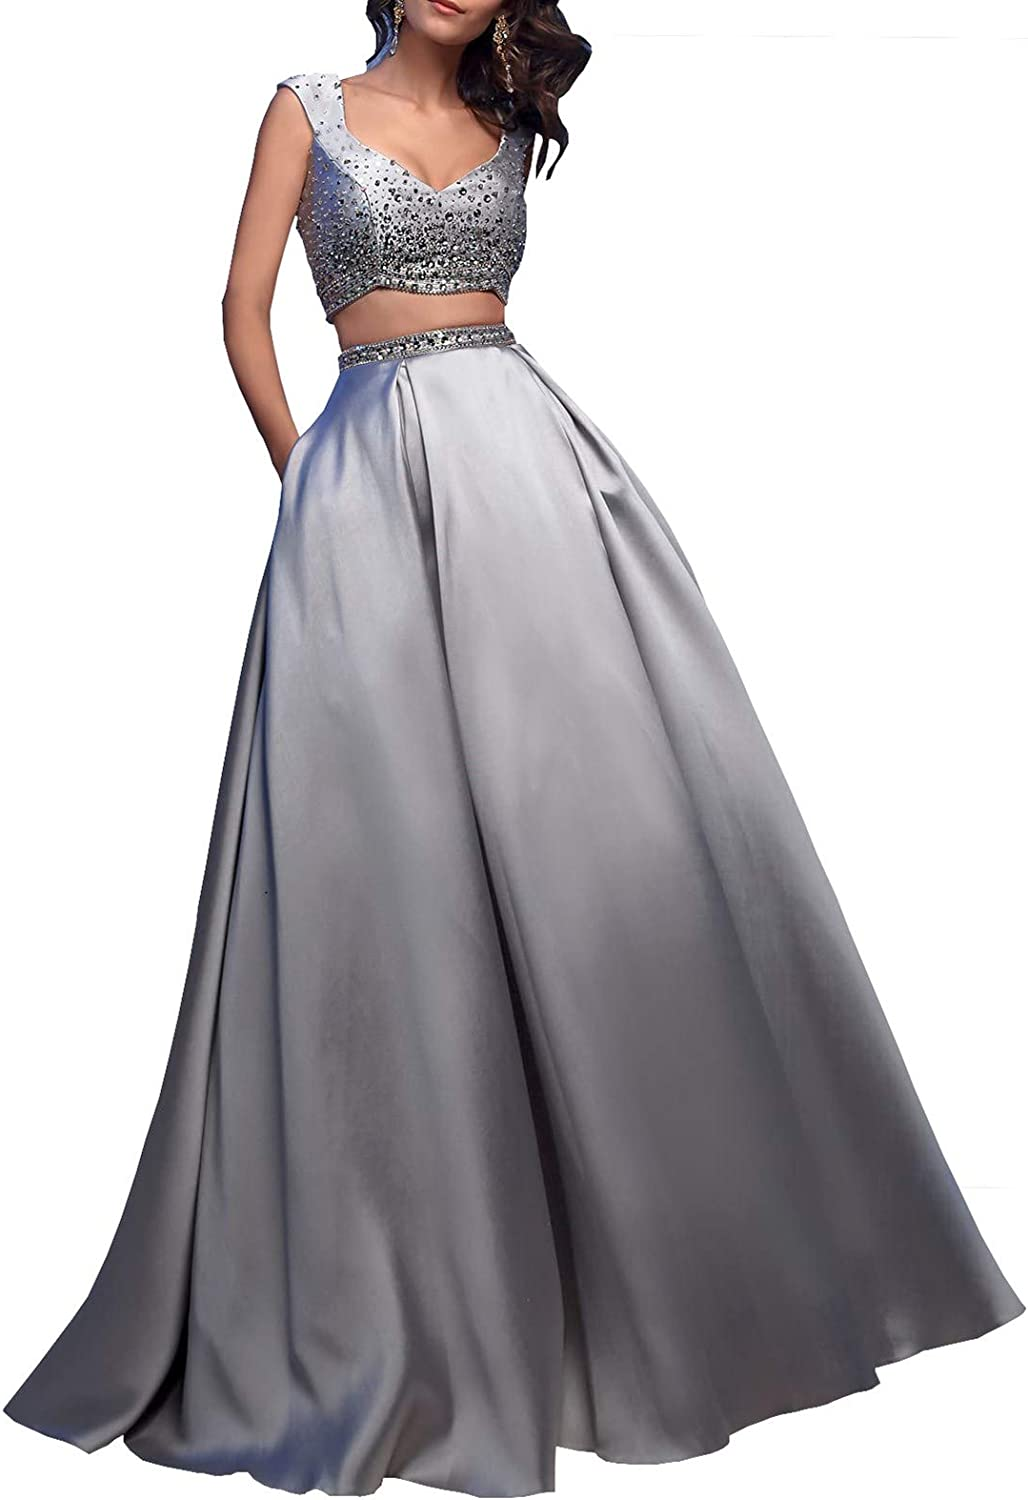 Topquality2016 Women's Two Piece Beading Bodice Prom Dress Formal Evening Gown